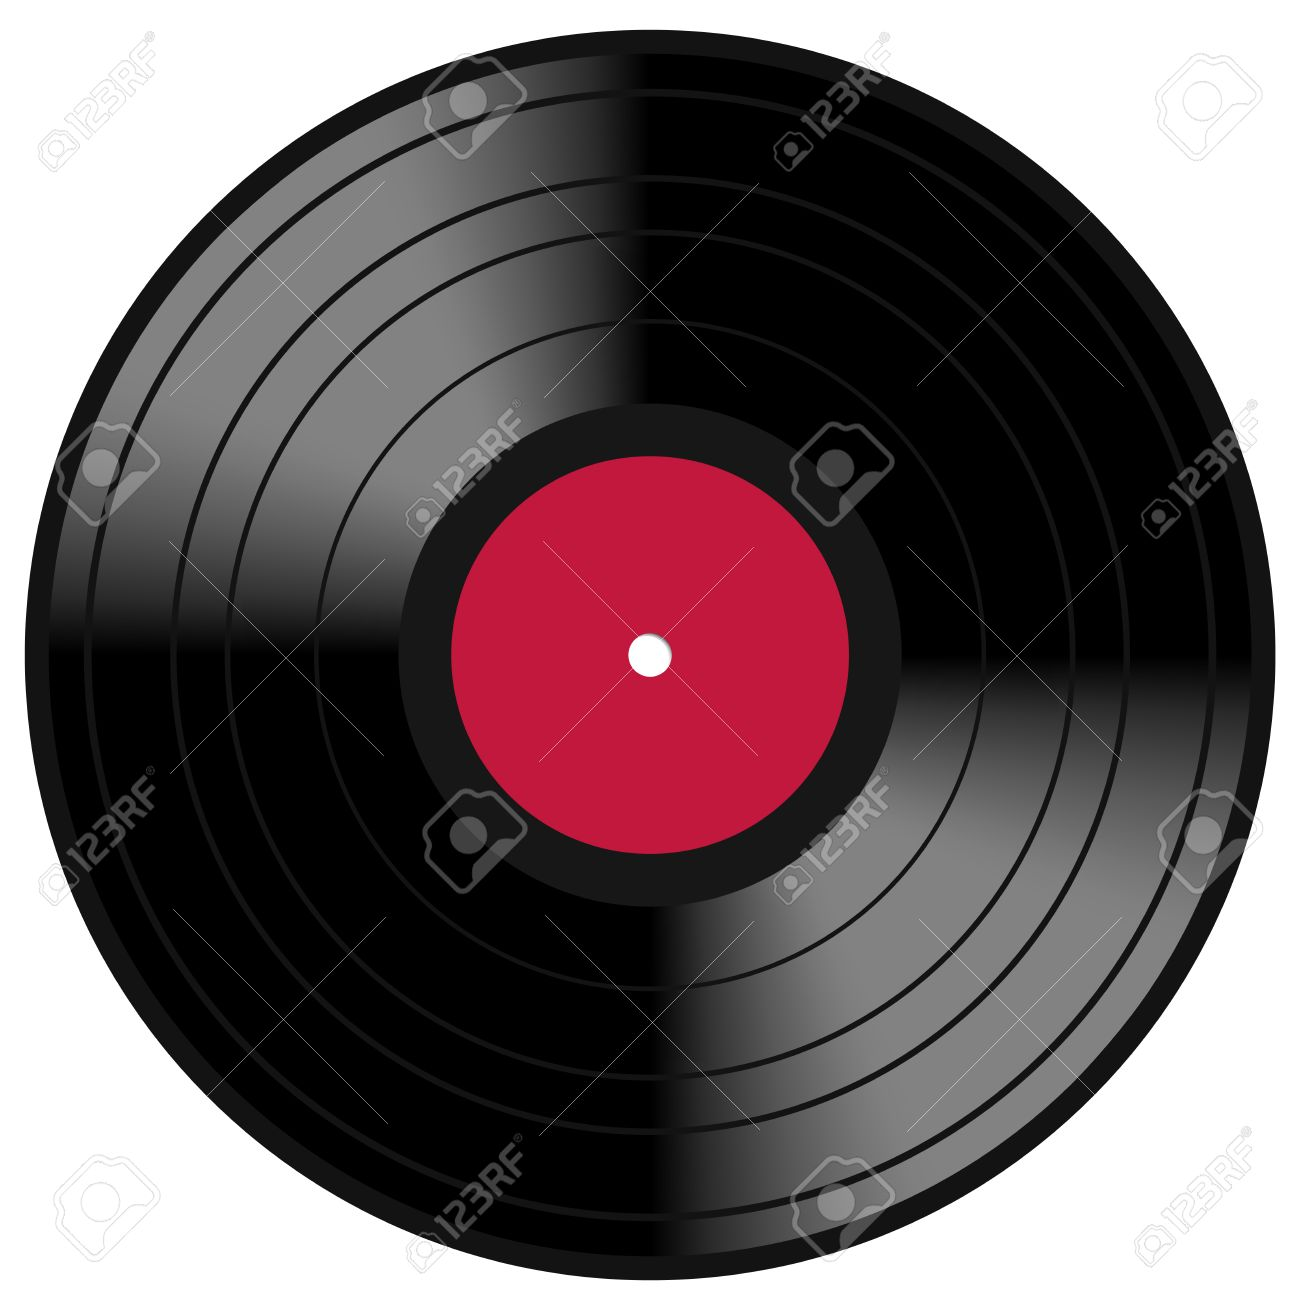 image of a vintage and analog 33 rpm lp vinyl disc record with